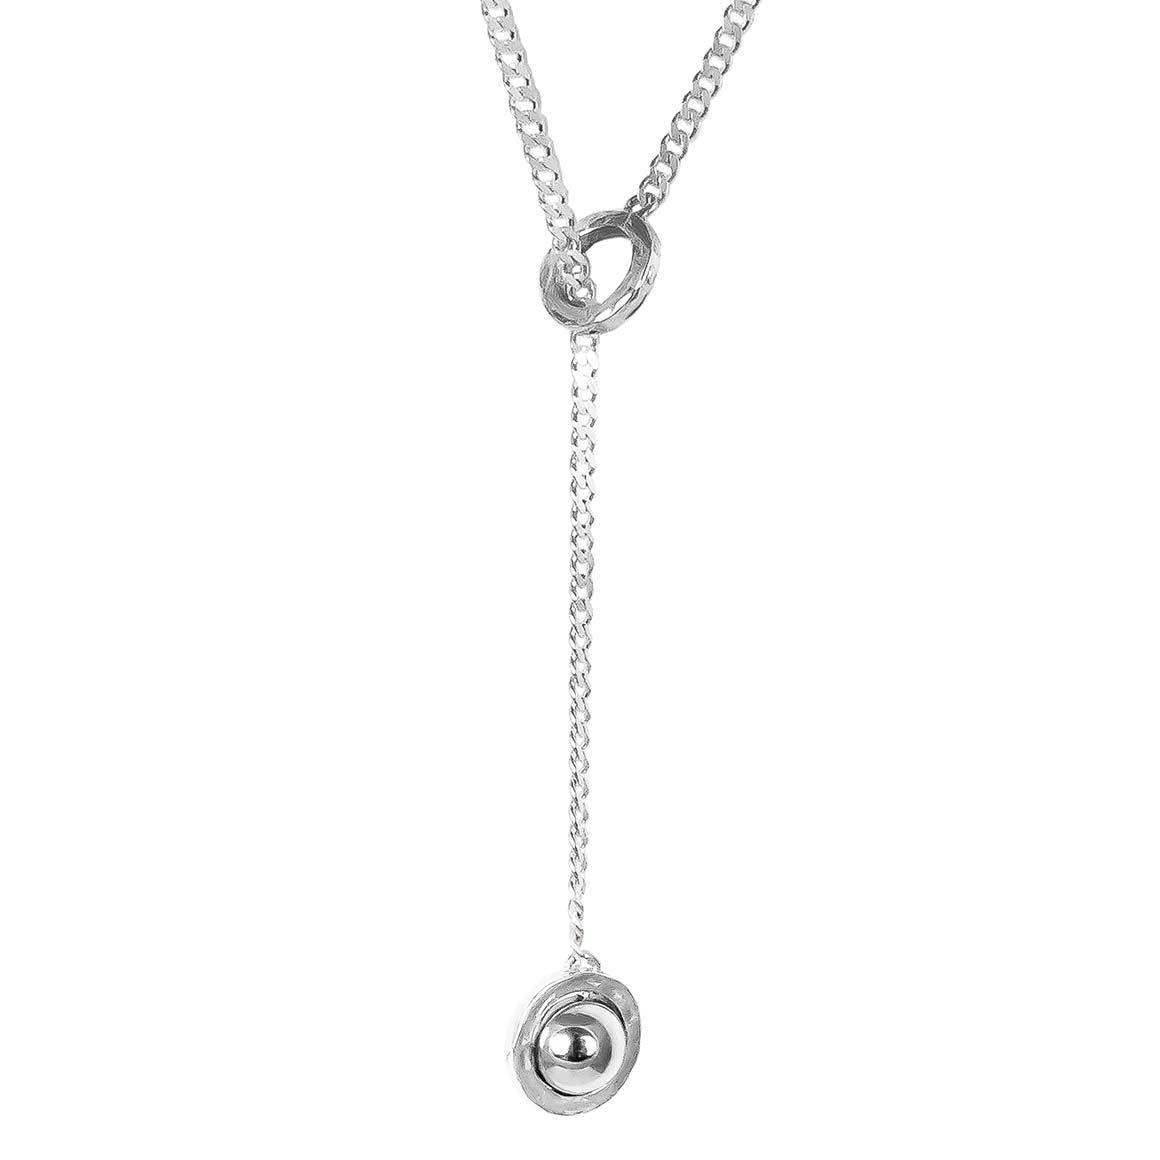 Atticus Large Charm Lariet Necklace | Polished Silver Detail | Trada Marketplace